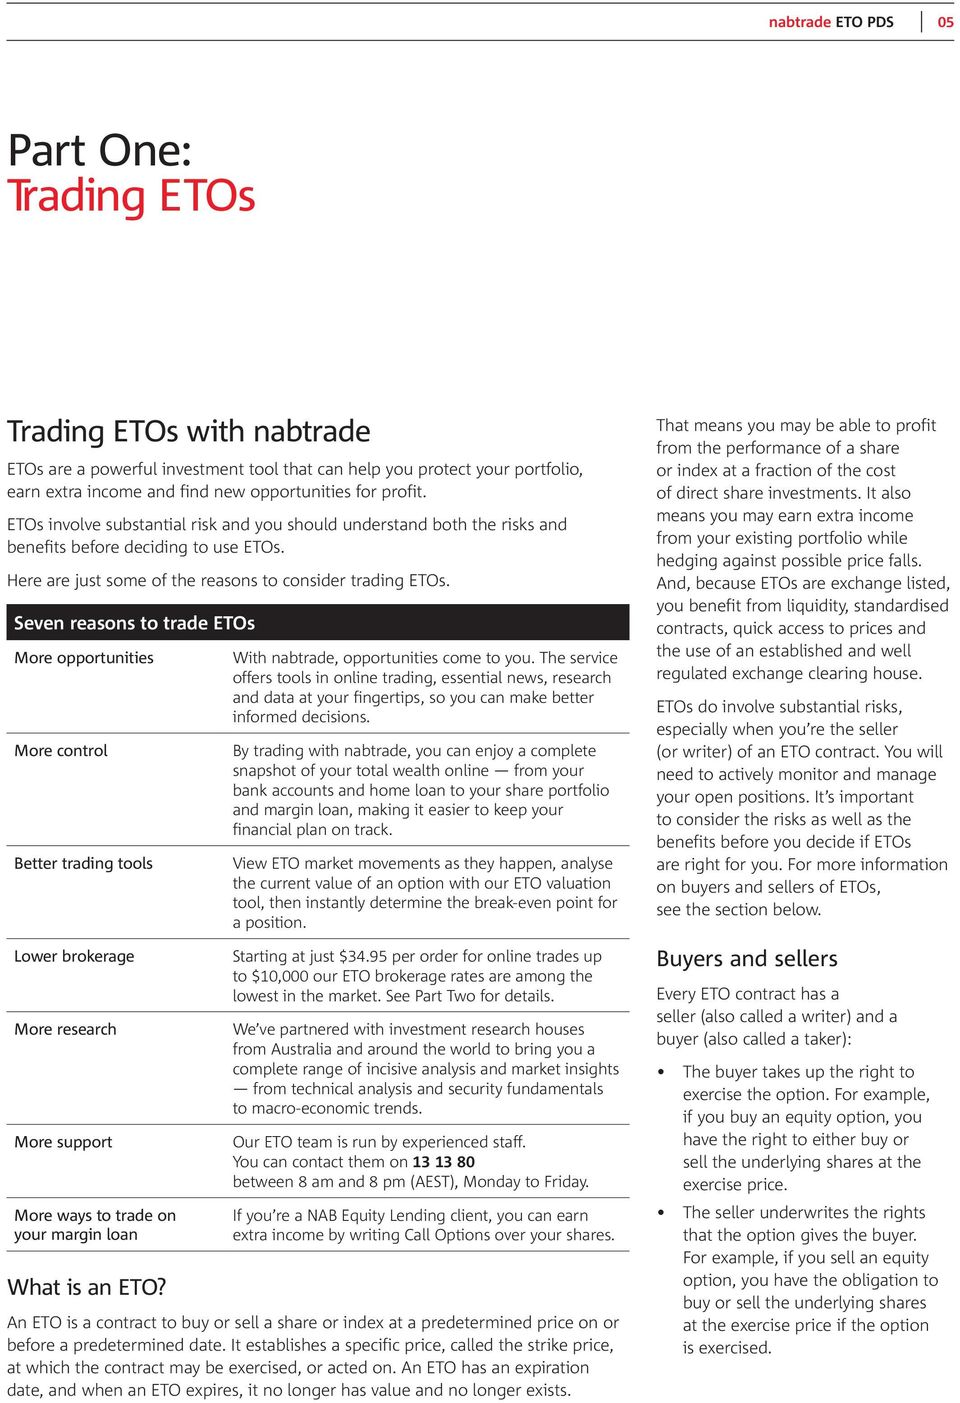 Seven reasons to trade ETOs More opportunities More control Better trading tools Lower brokerage More research More support More ways to trade on your margin loan What is an ETO?